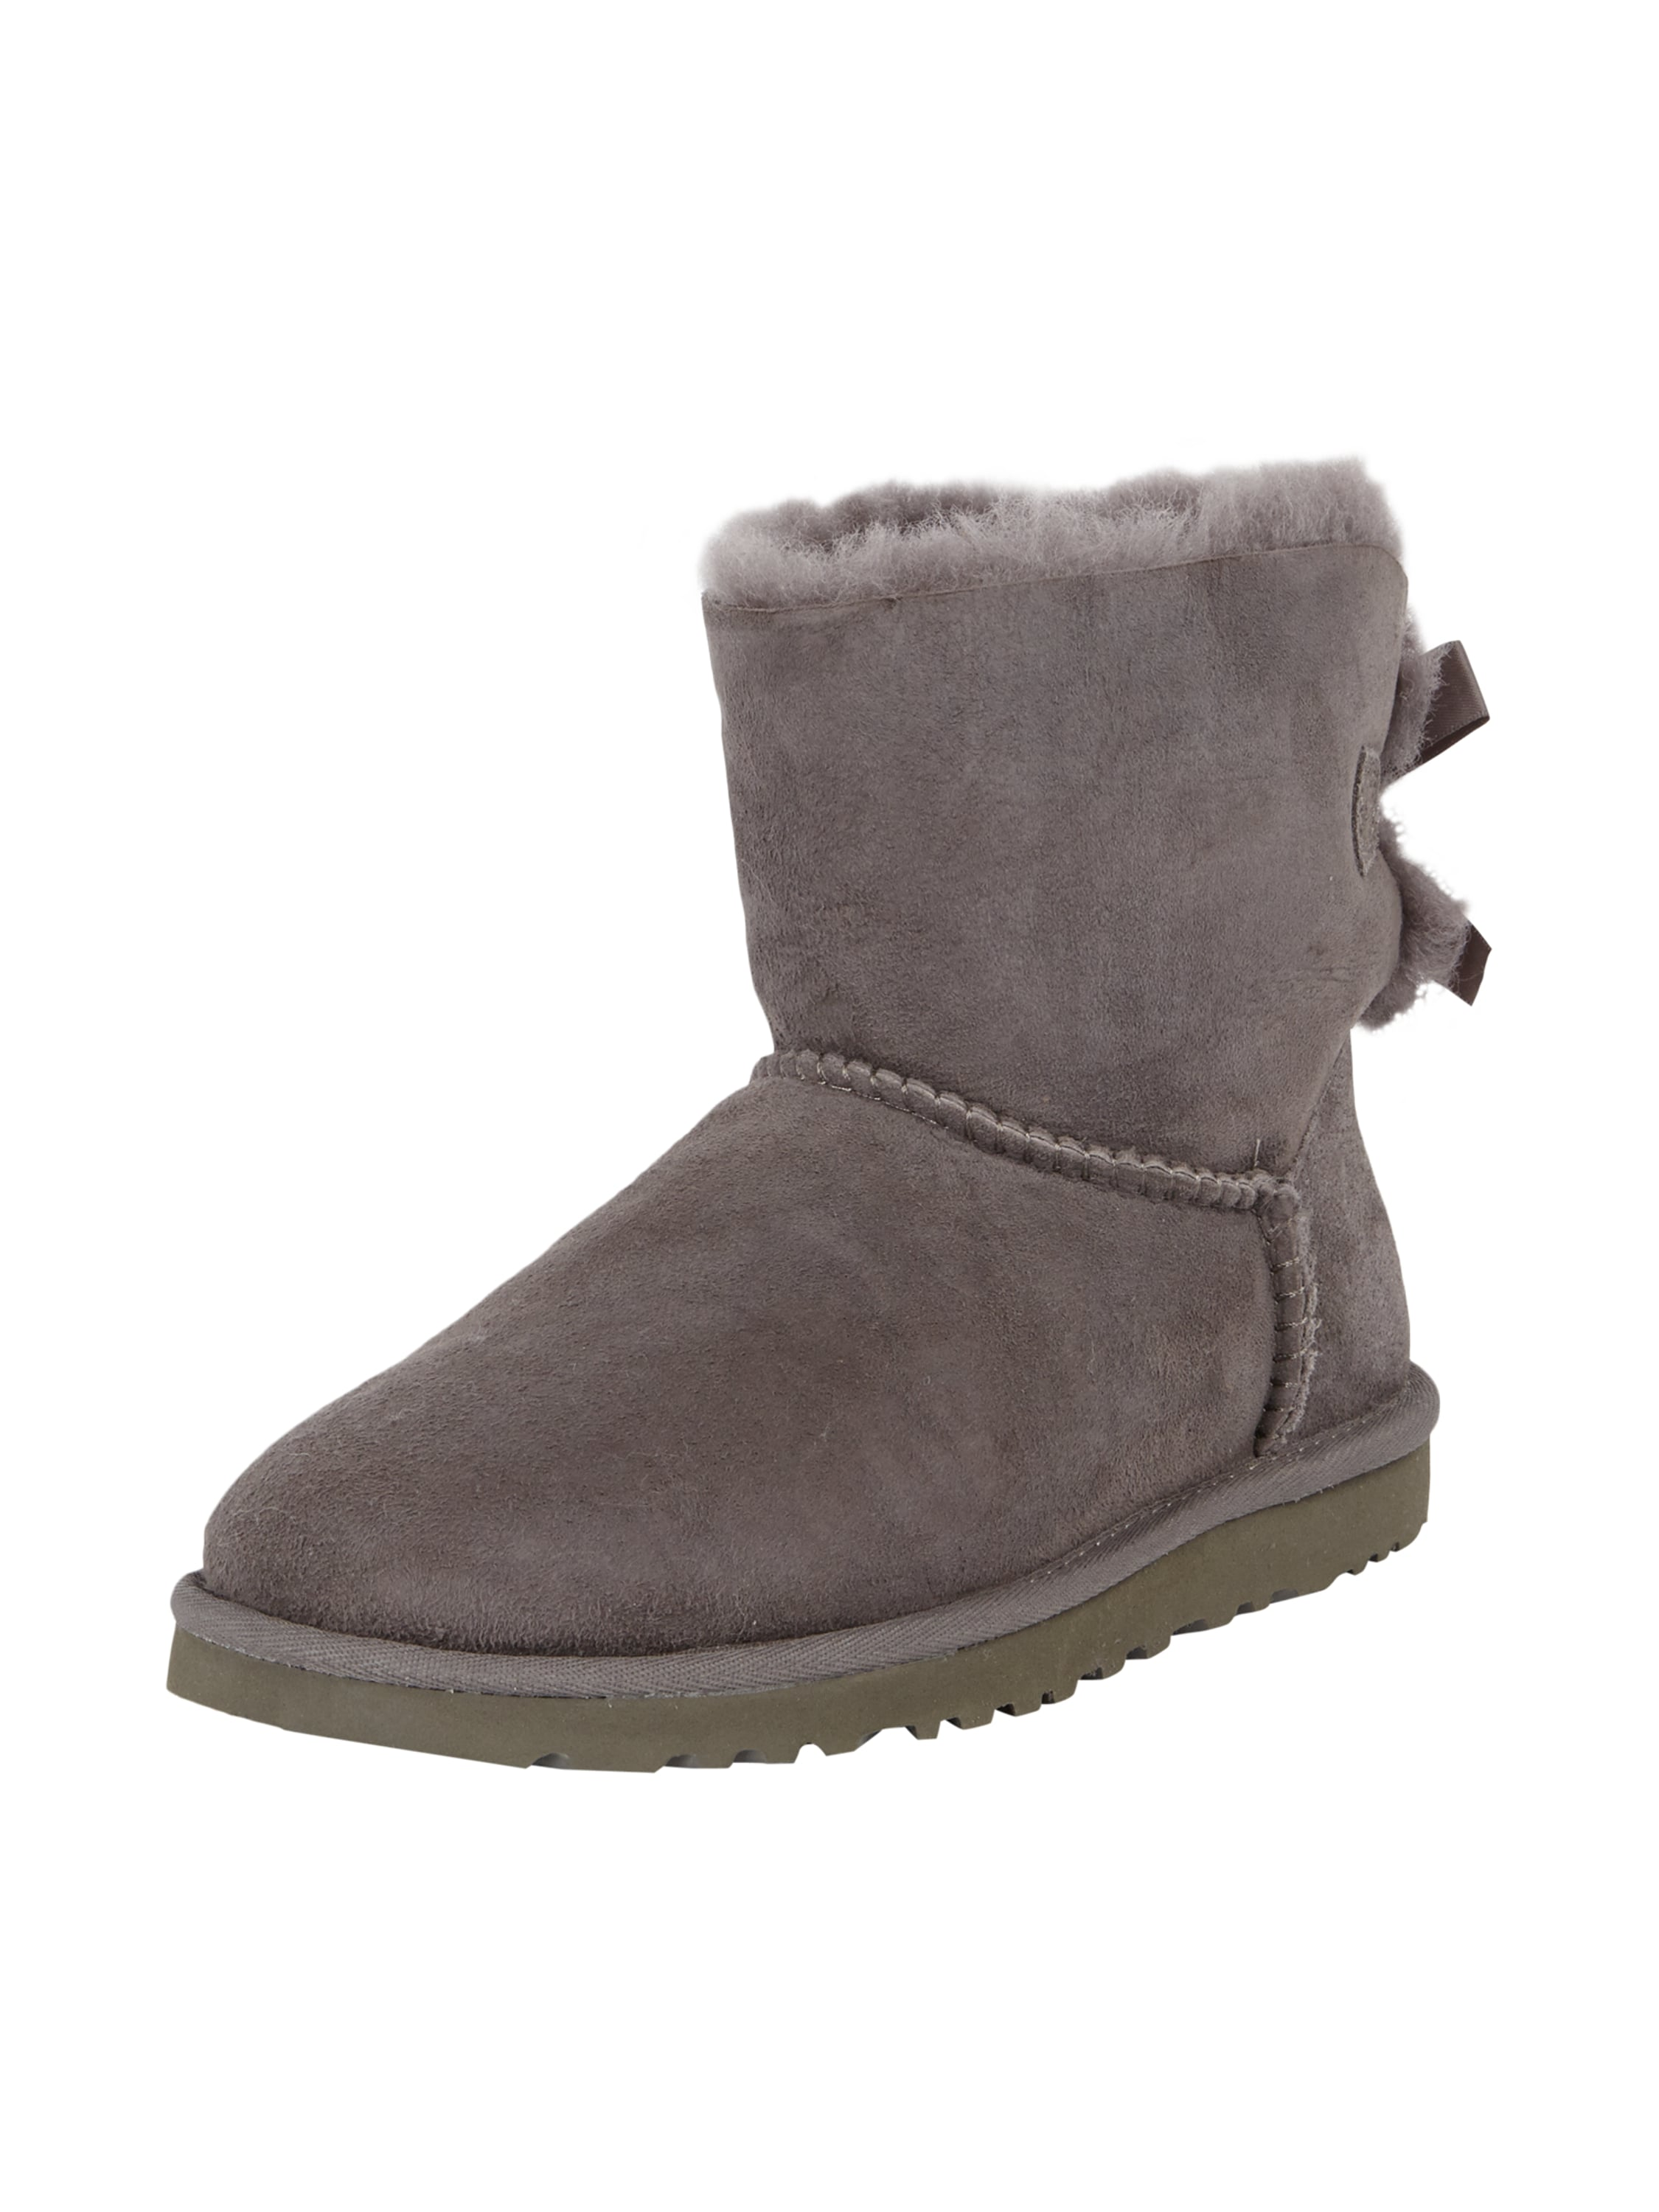 ugg official site australia